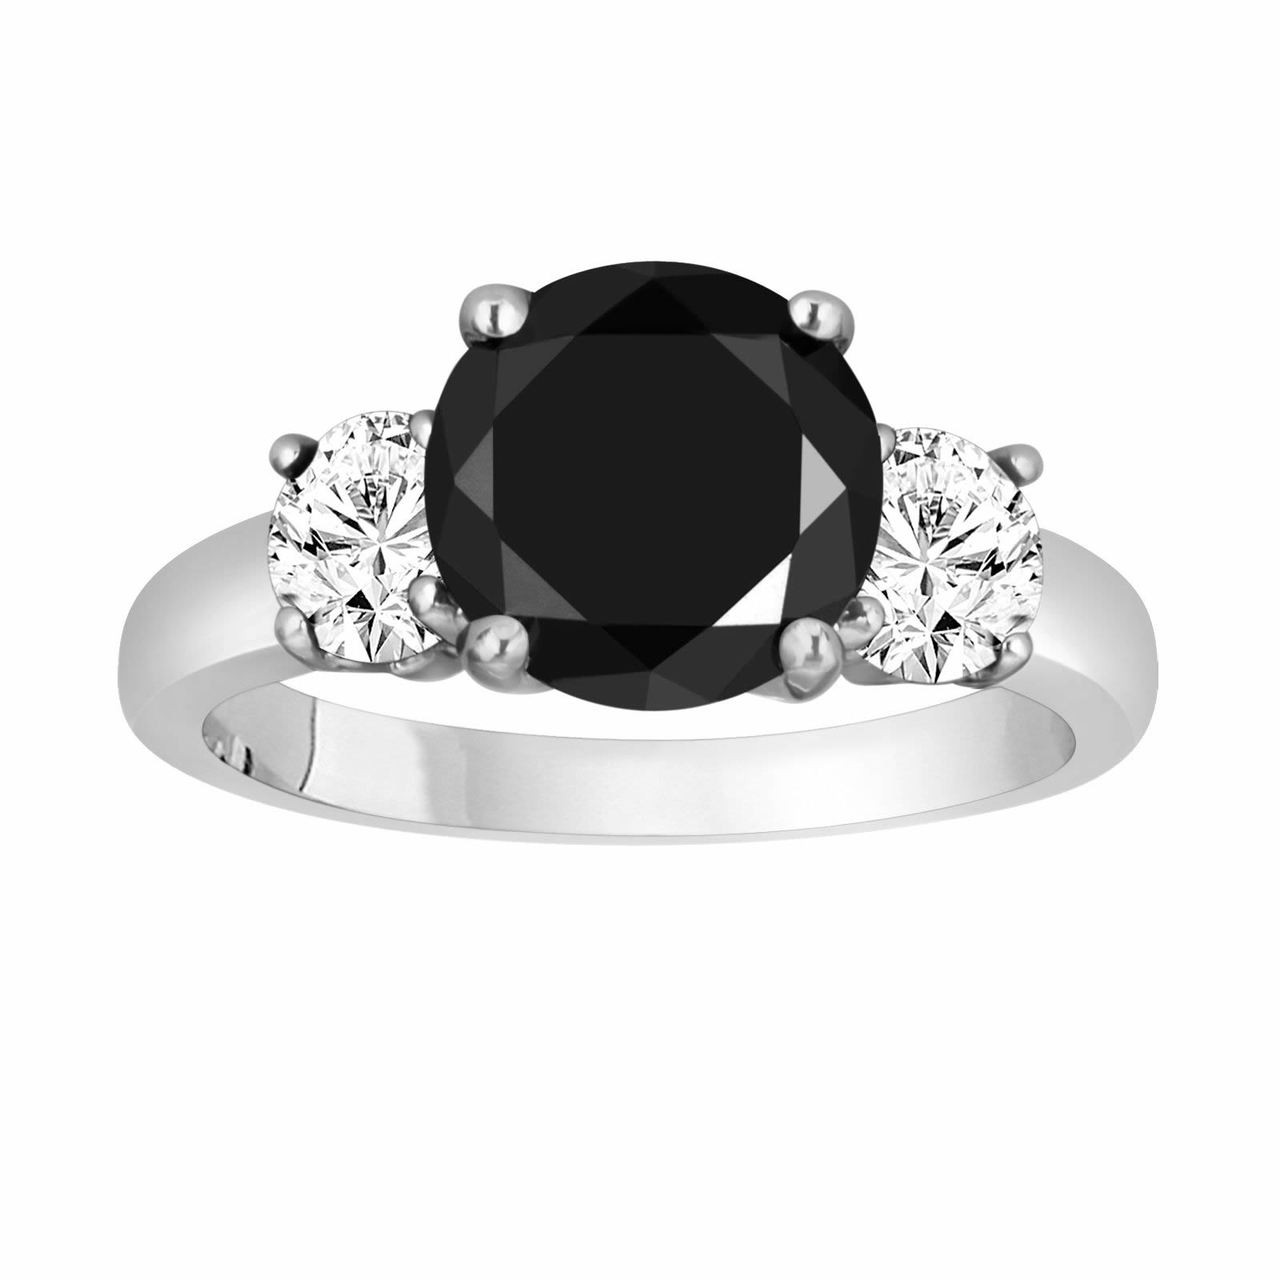 b7bb80c4a7b Platinum Black & White Diamond Three-Stone Engagement Ring 2.60 Carat  Handmade Unique Certified